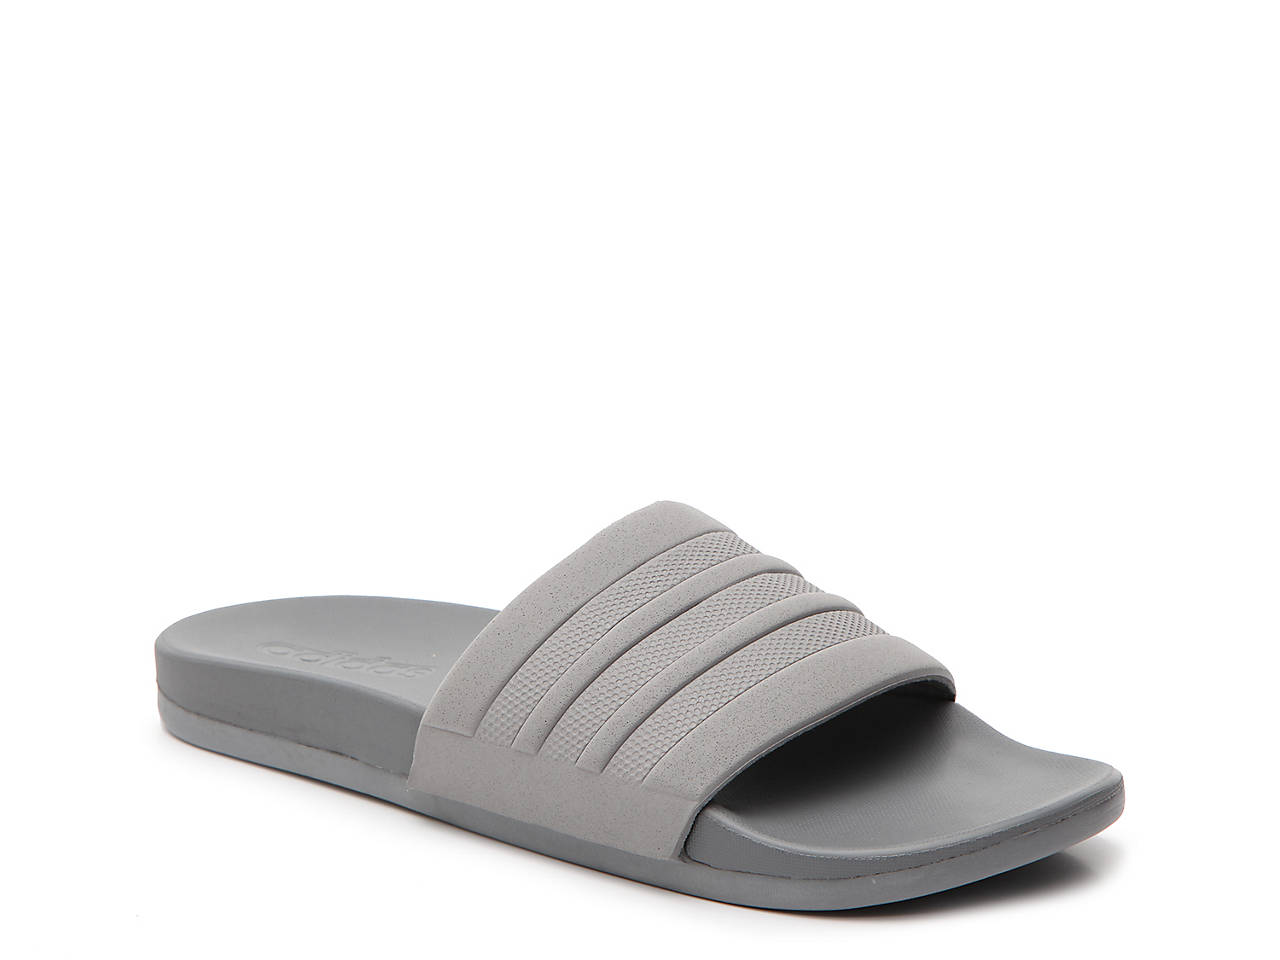 adidas Adilette Comfort Slide Sandals - Women s Women s Shoes  773463d26